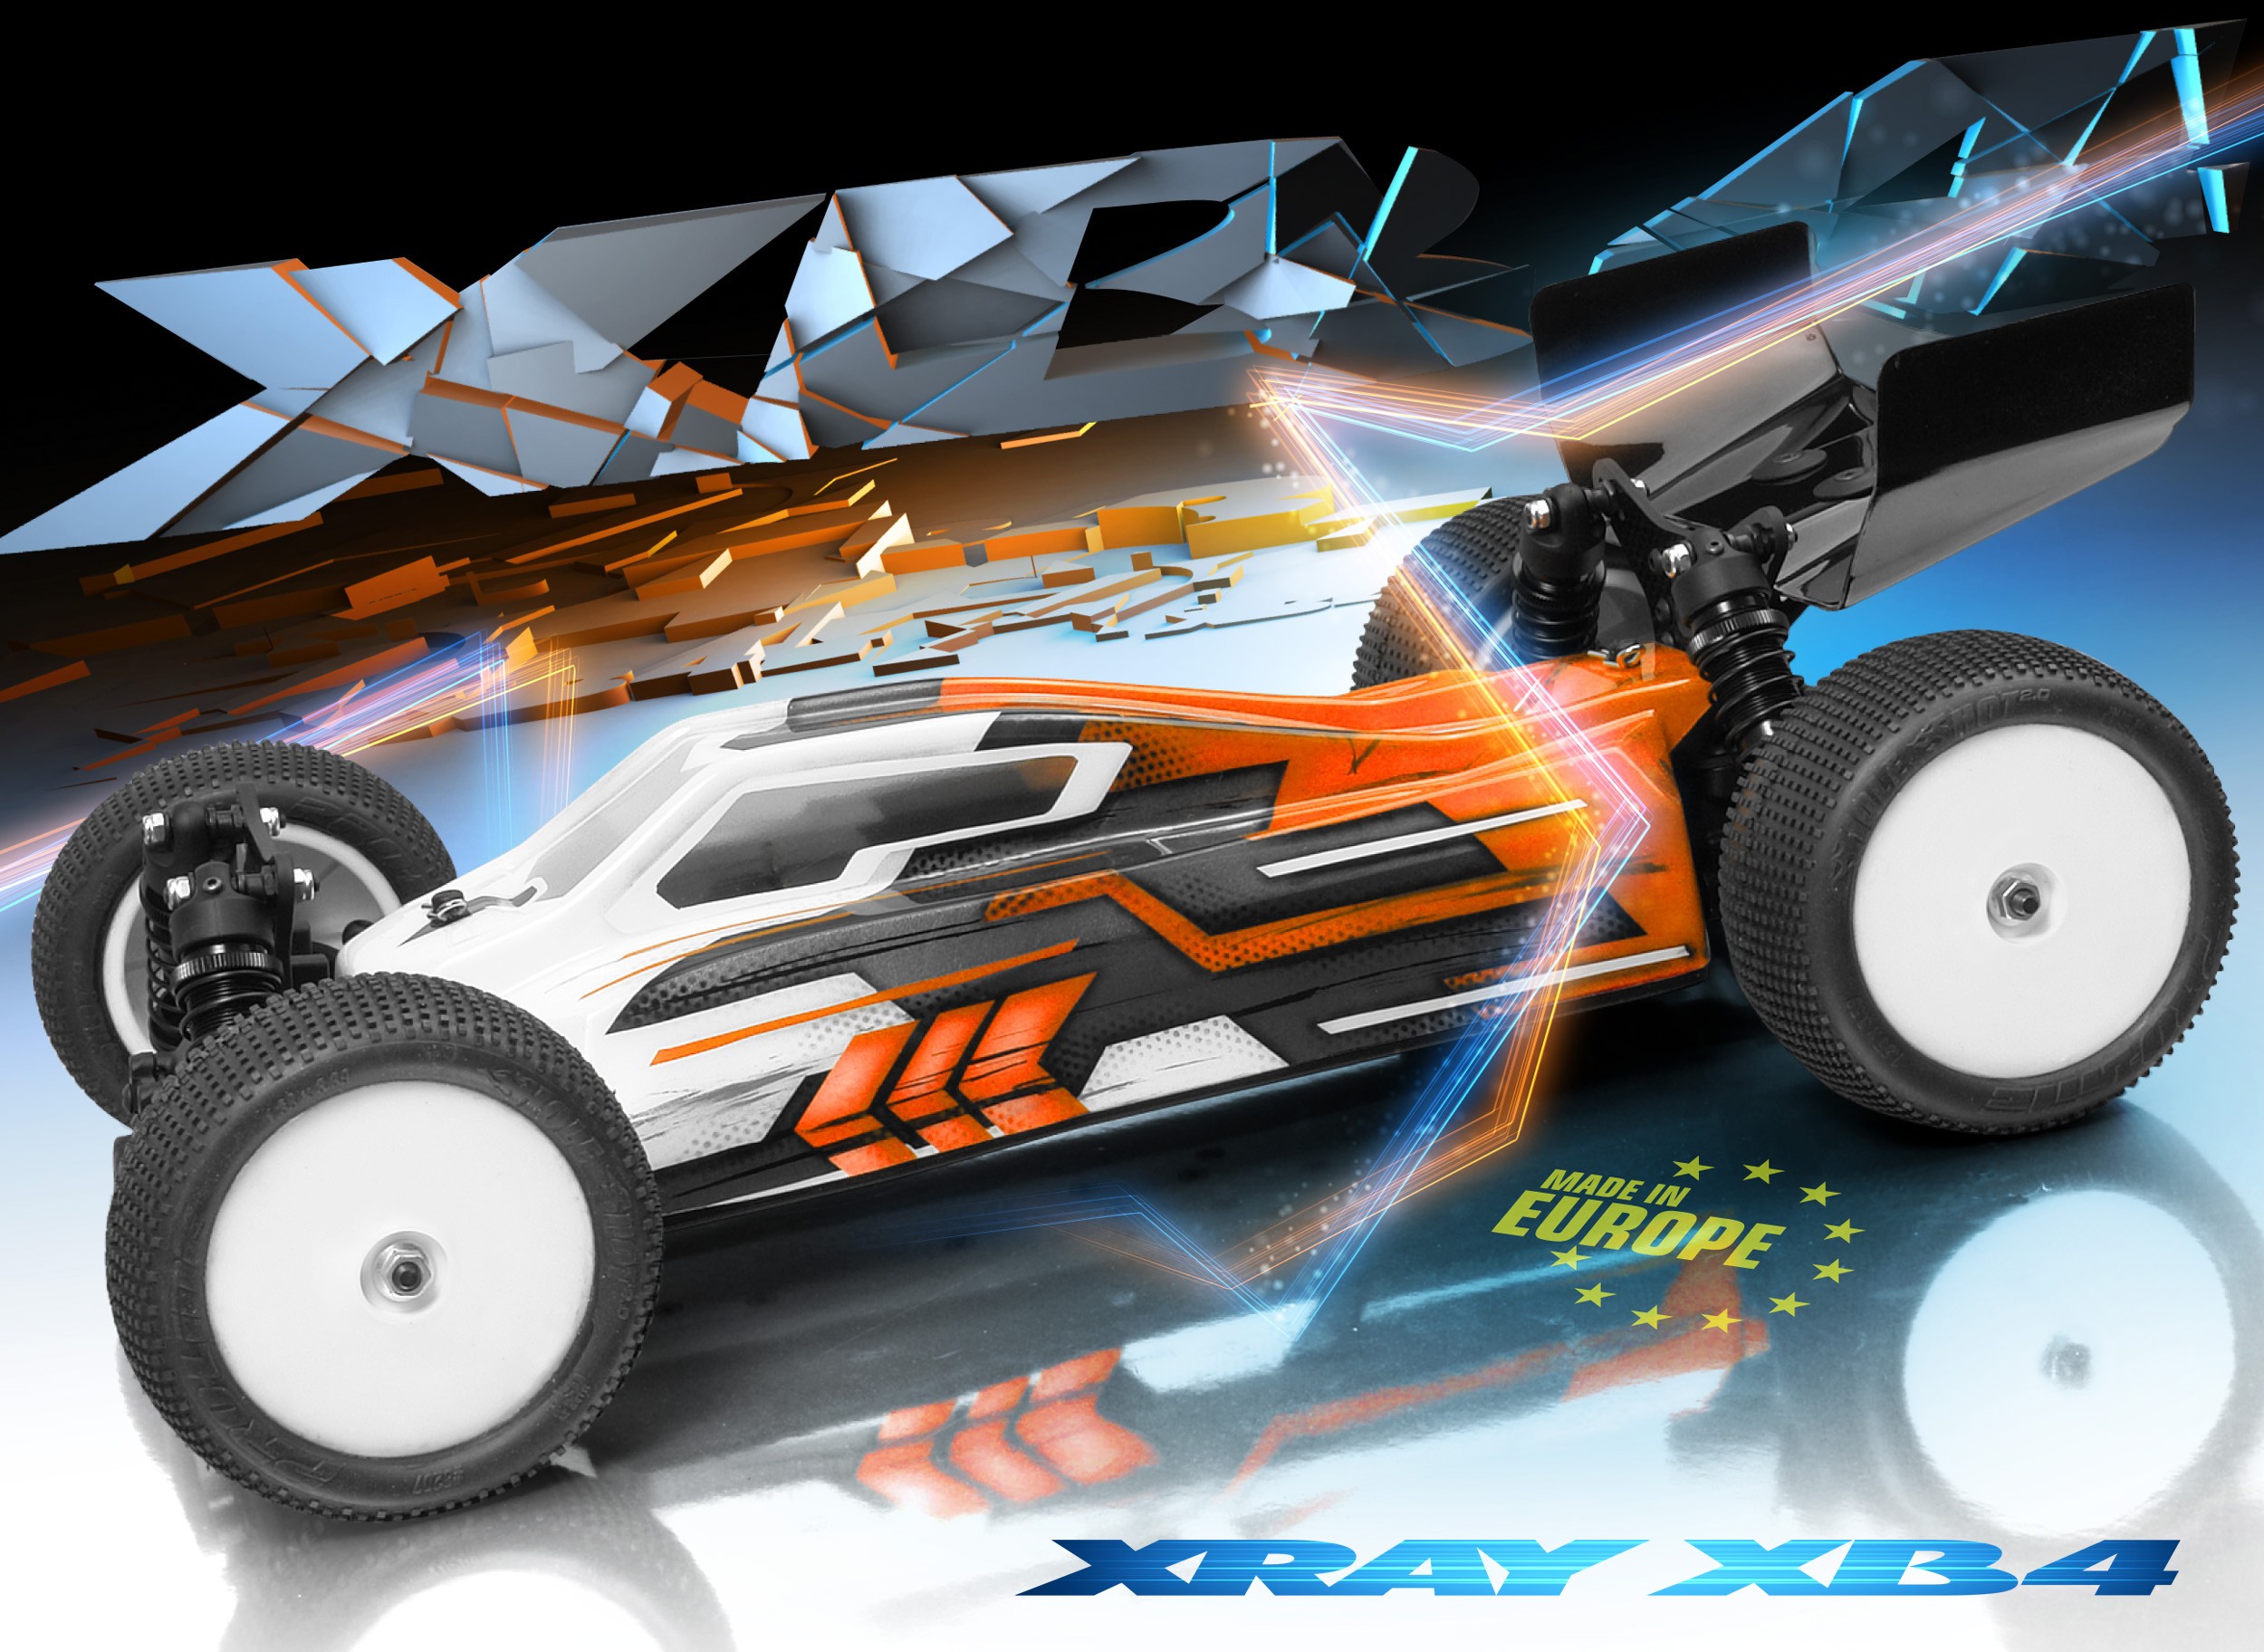 rc cars com with Gallerie on 20590 New Dubai Mod together with 9054 Car further 2018 Toyota Prius C Review additionally 2016 Ktm 390 Duke Vs 2017 Ktm 390 Duke likewise 17167669.